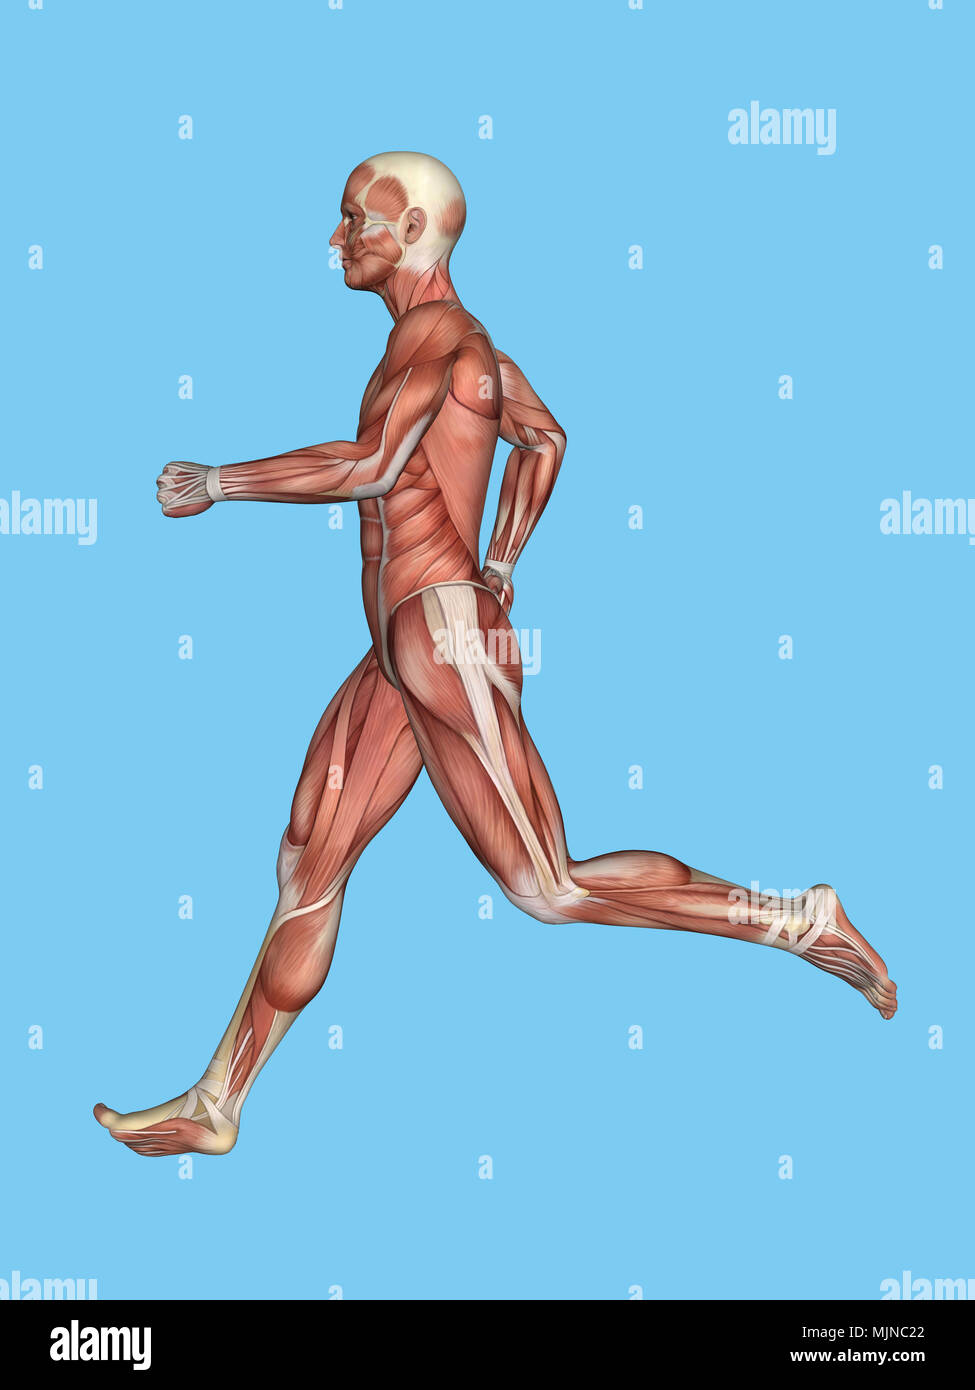 Muscles of Male Anatomy in Motion Stock Photo: 183637946 - Alamy